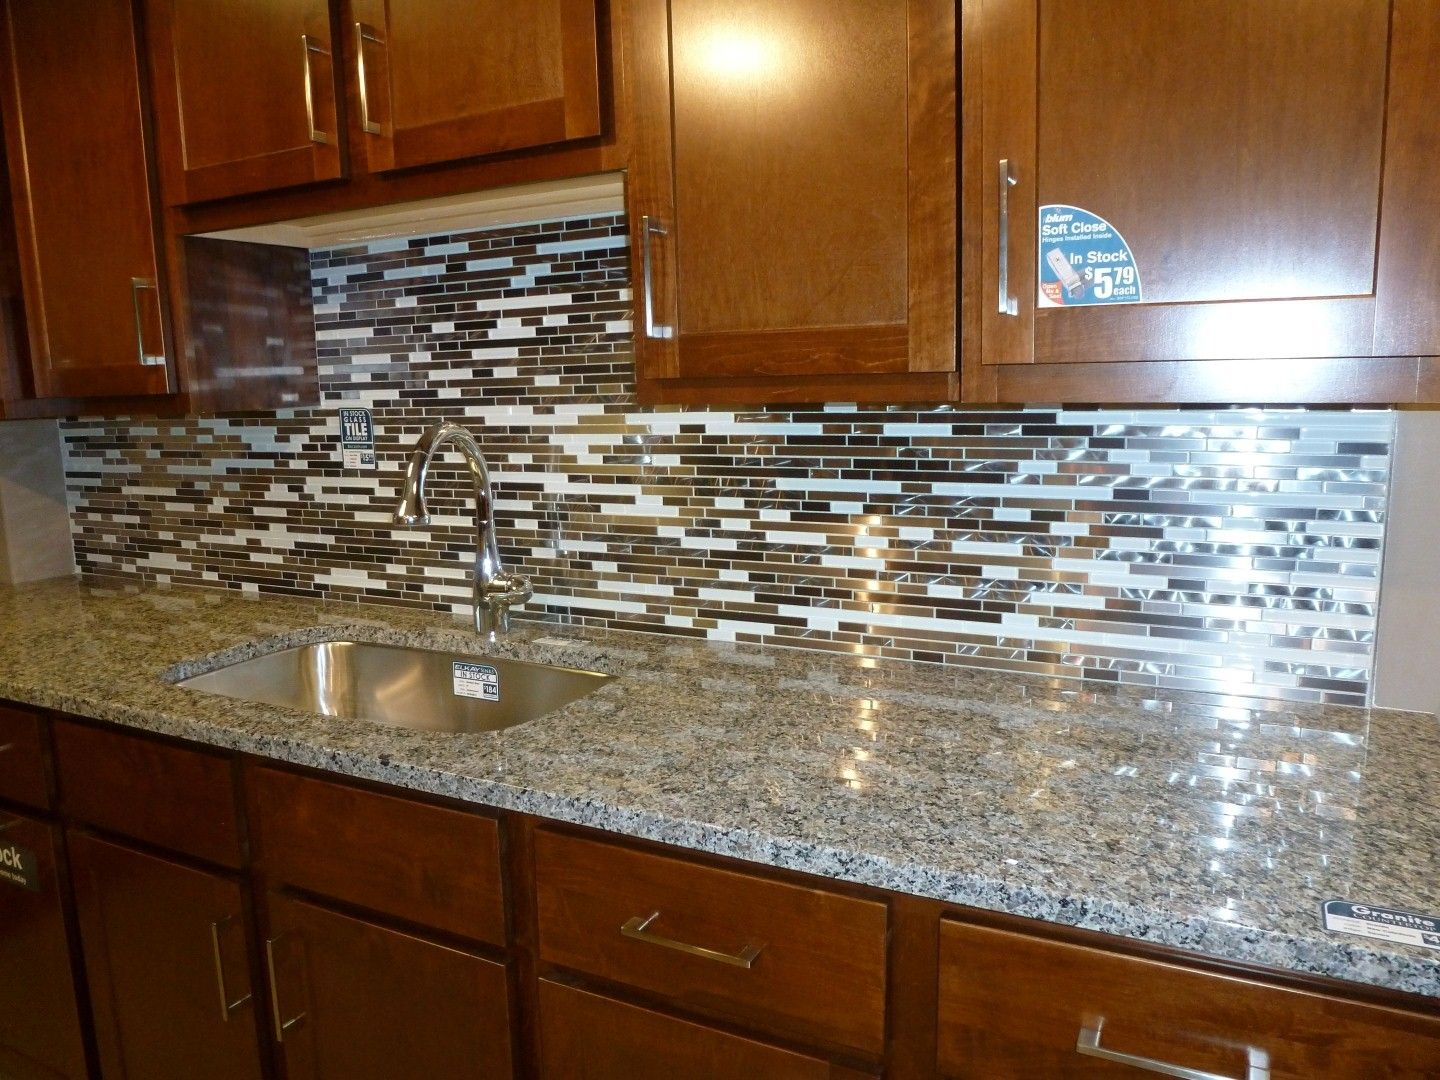 glass tile kitchen backsplash photos httpgoogl - Glass Tiles For Backsplash